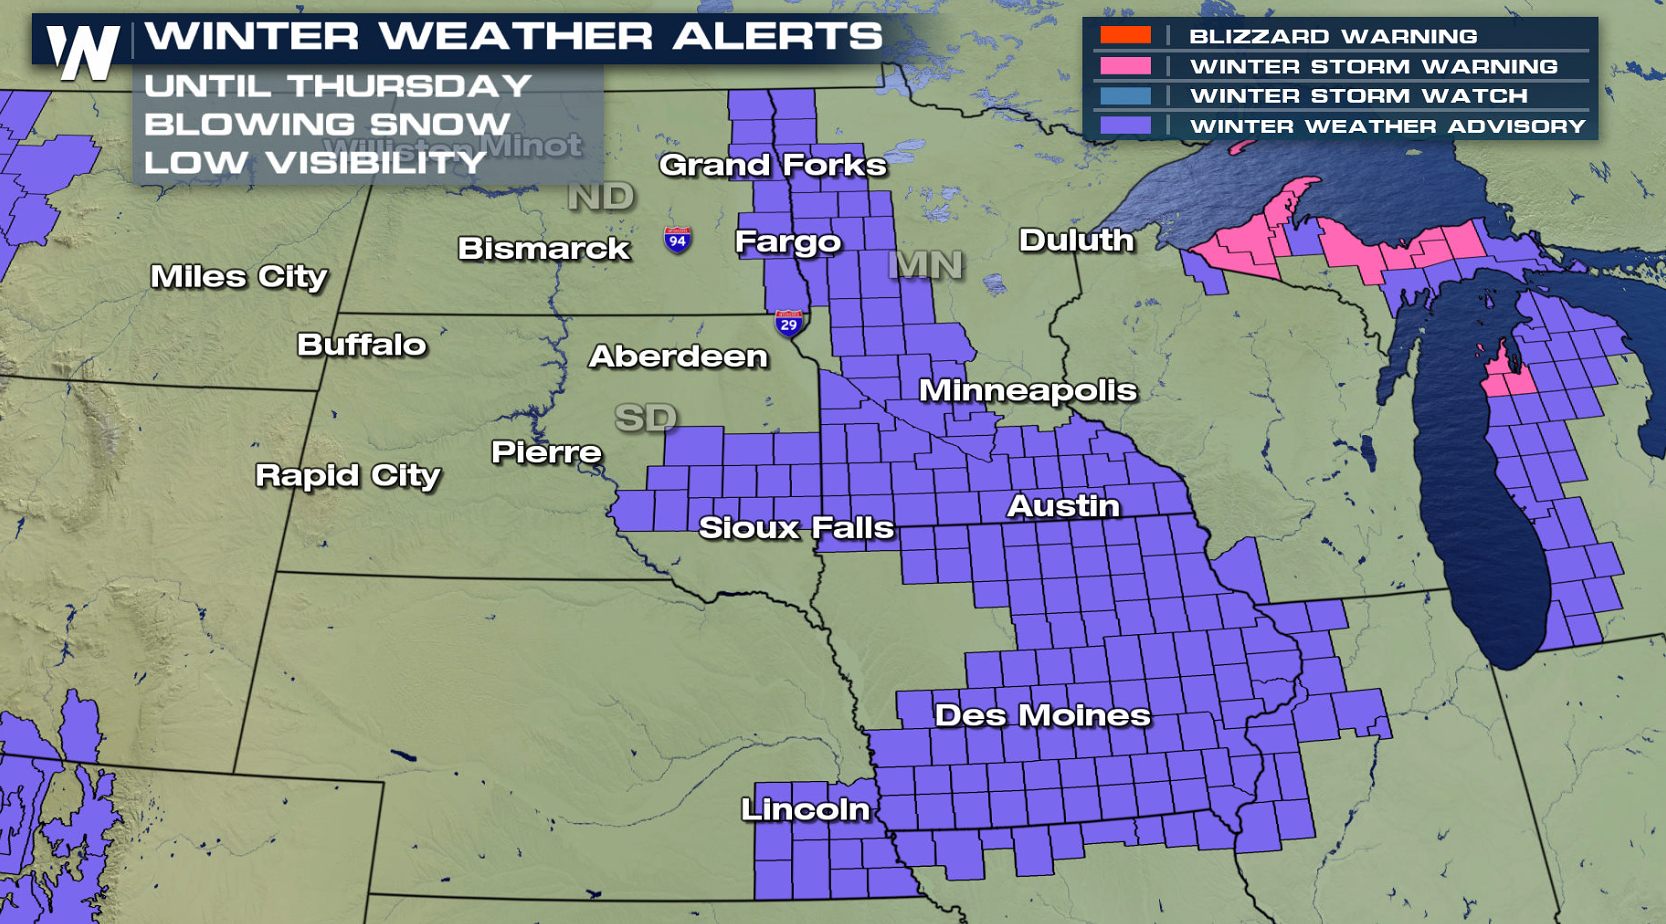 Blizzard Conditions Improving in the Northern Plains